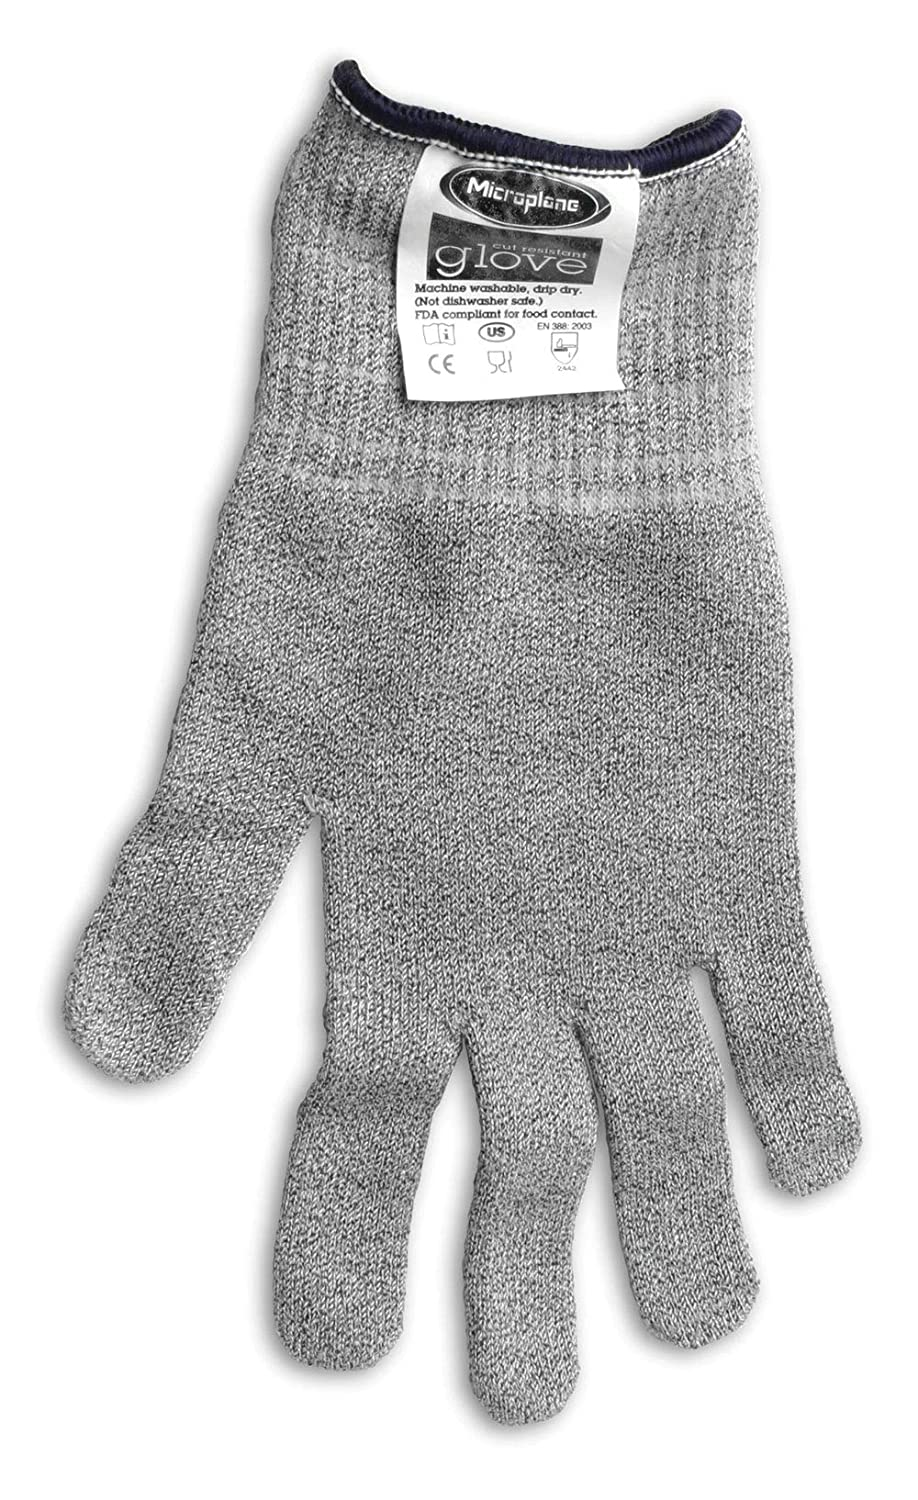 Microplane Cut Resistant Glove 34007